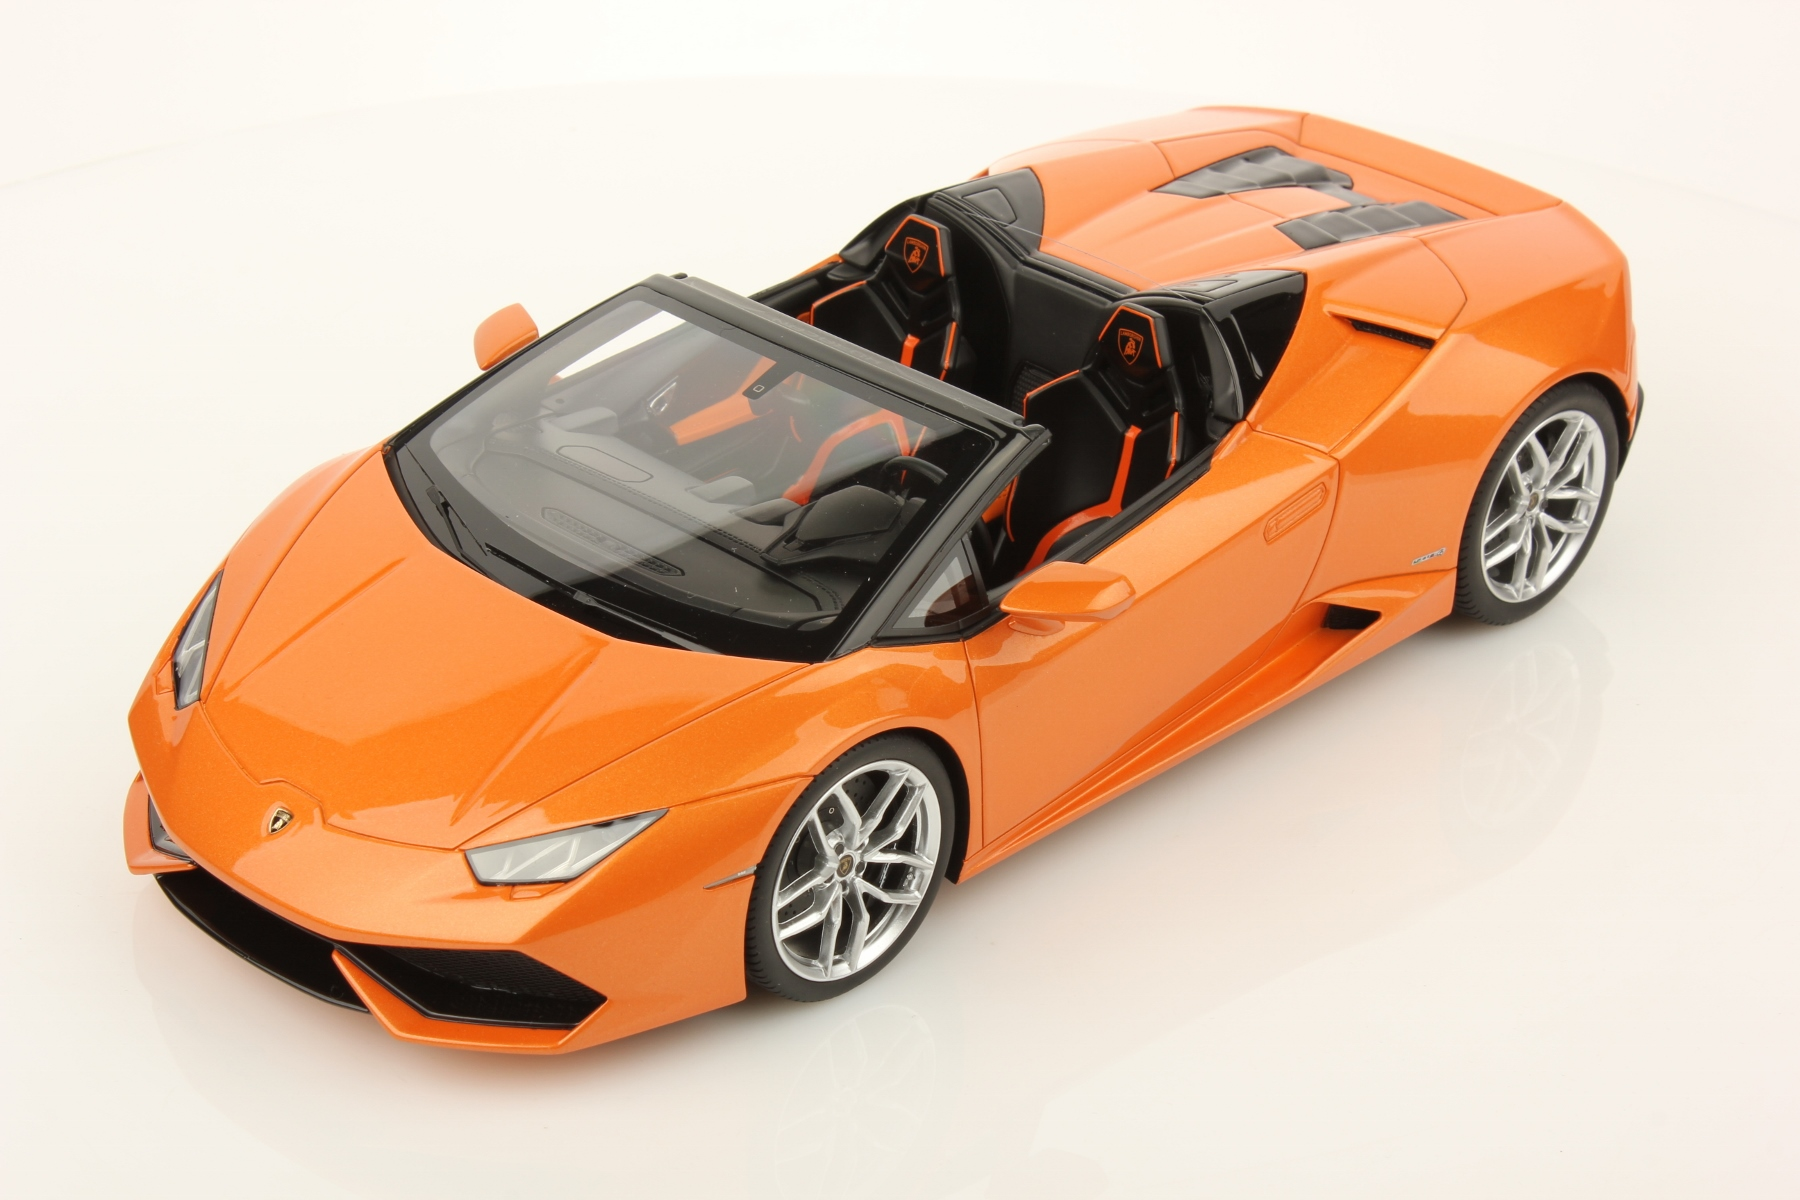 lamborghini huracan spyder price in uae lamborghini. Black Bedroom Furniture Sets. Home Design Ideas